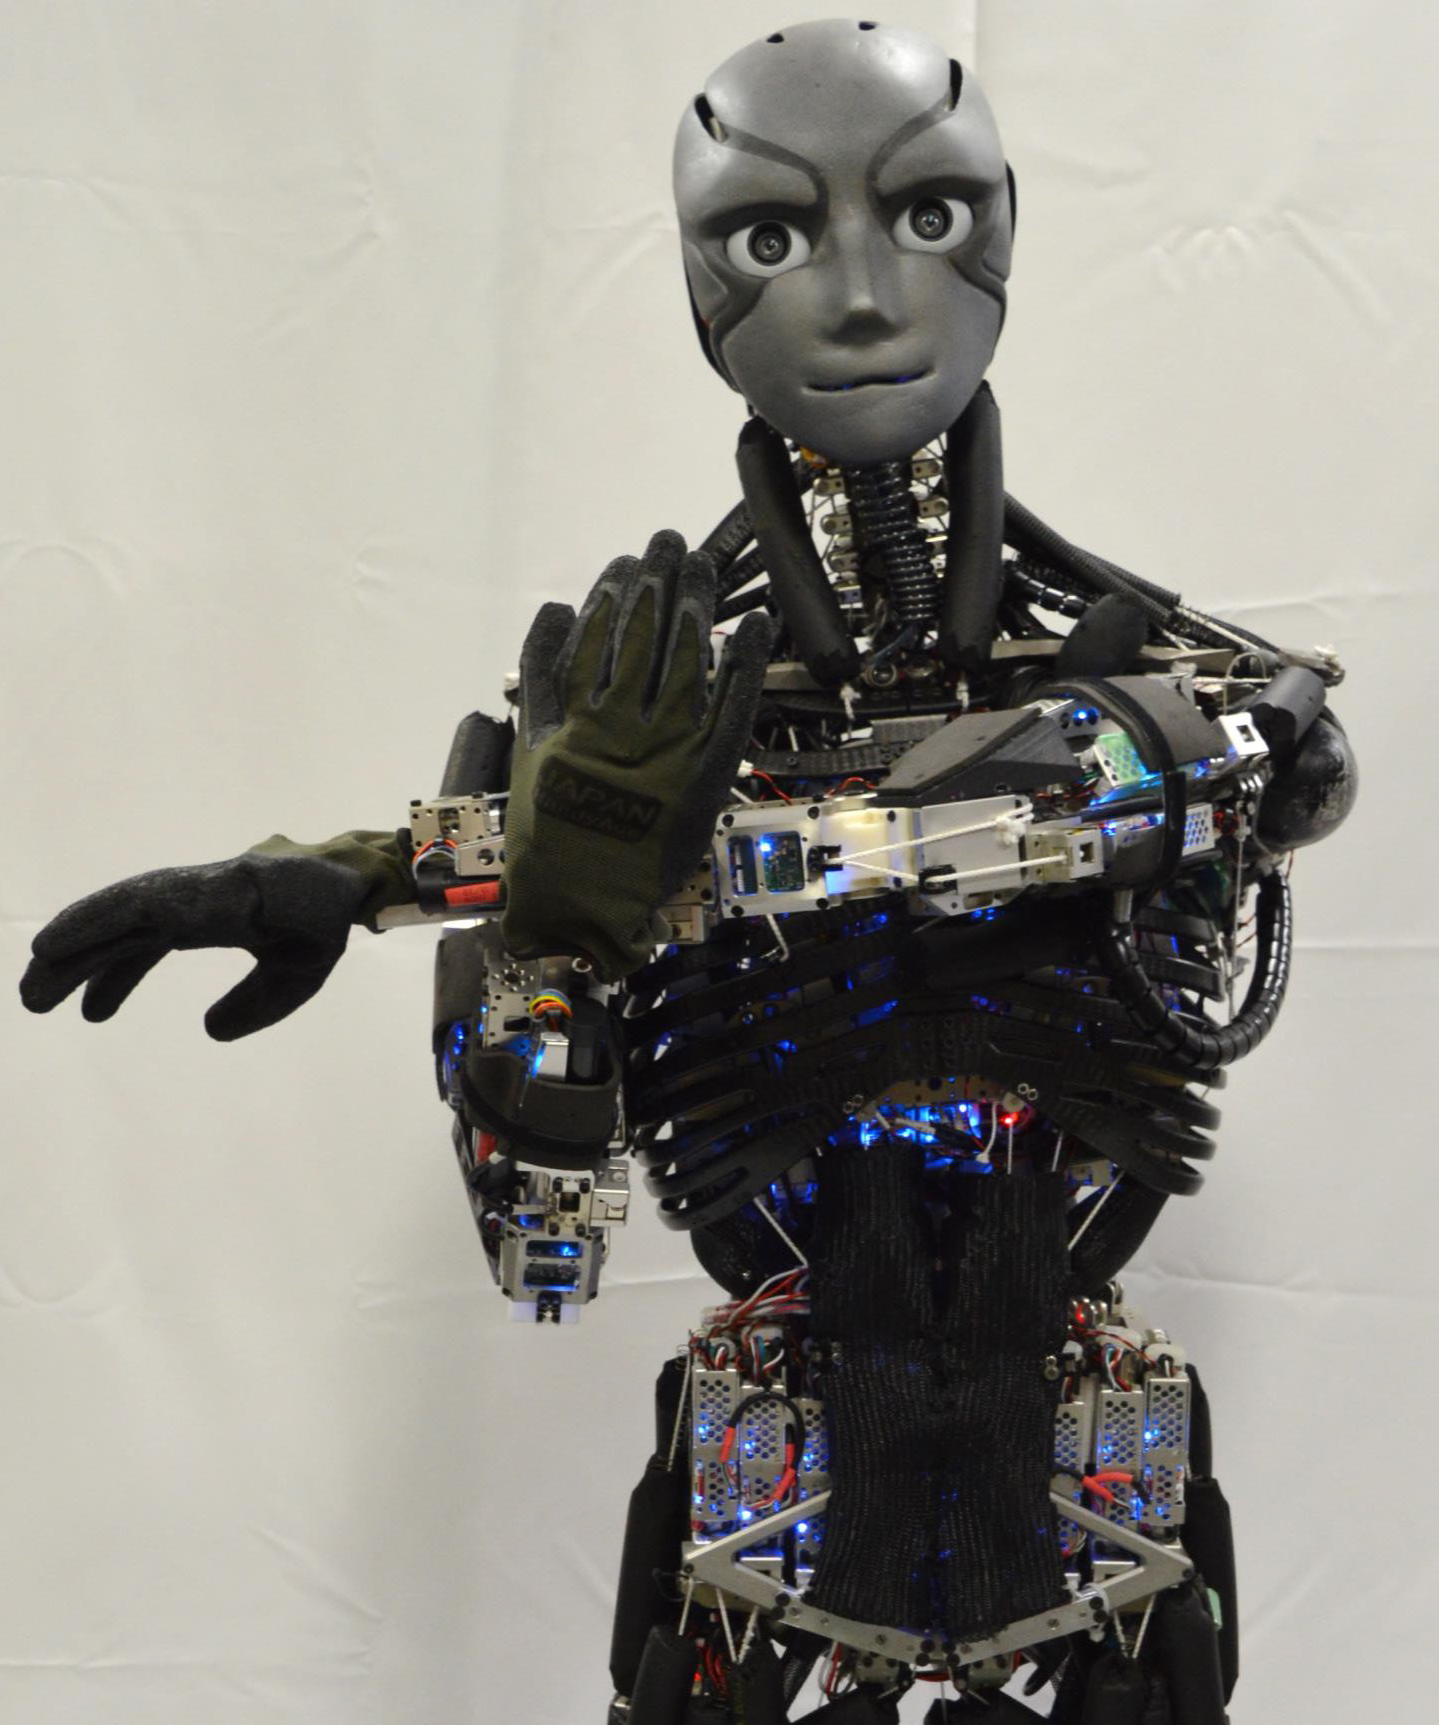 Japanese researchers most unveil life-life humanoid robots ...